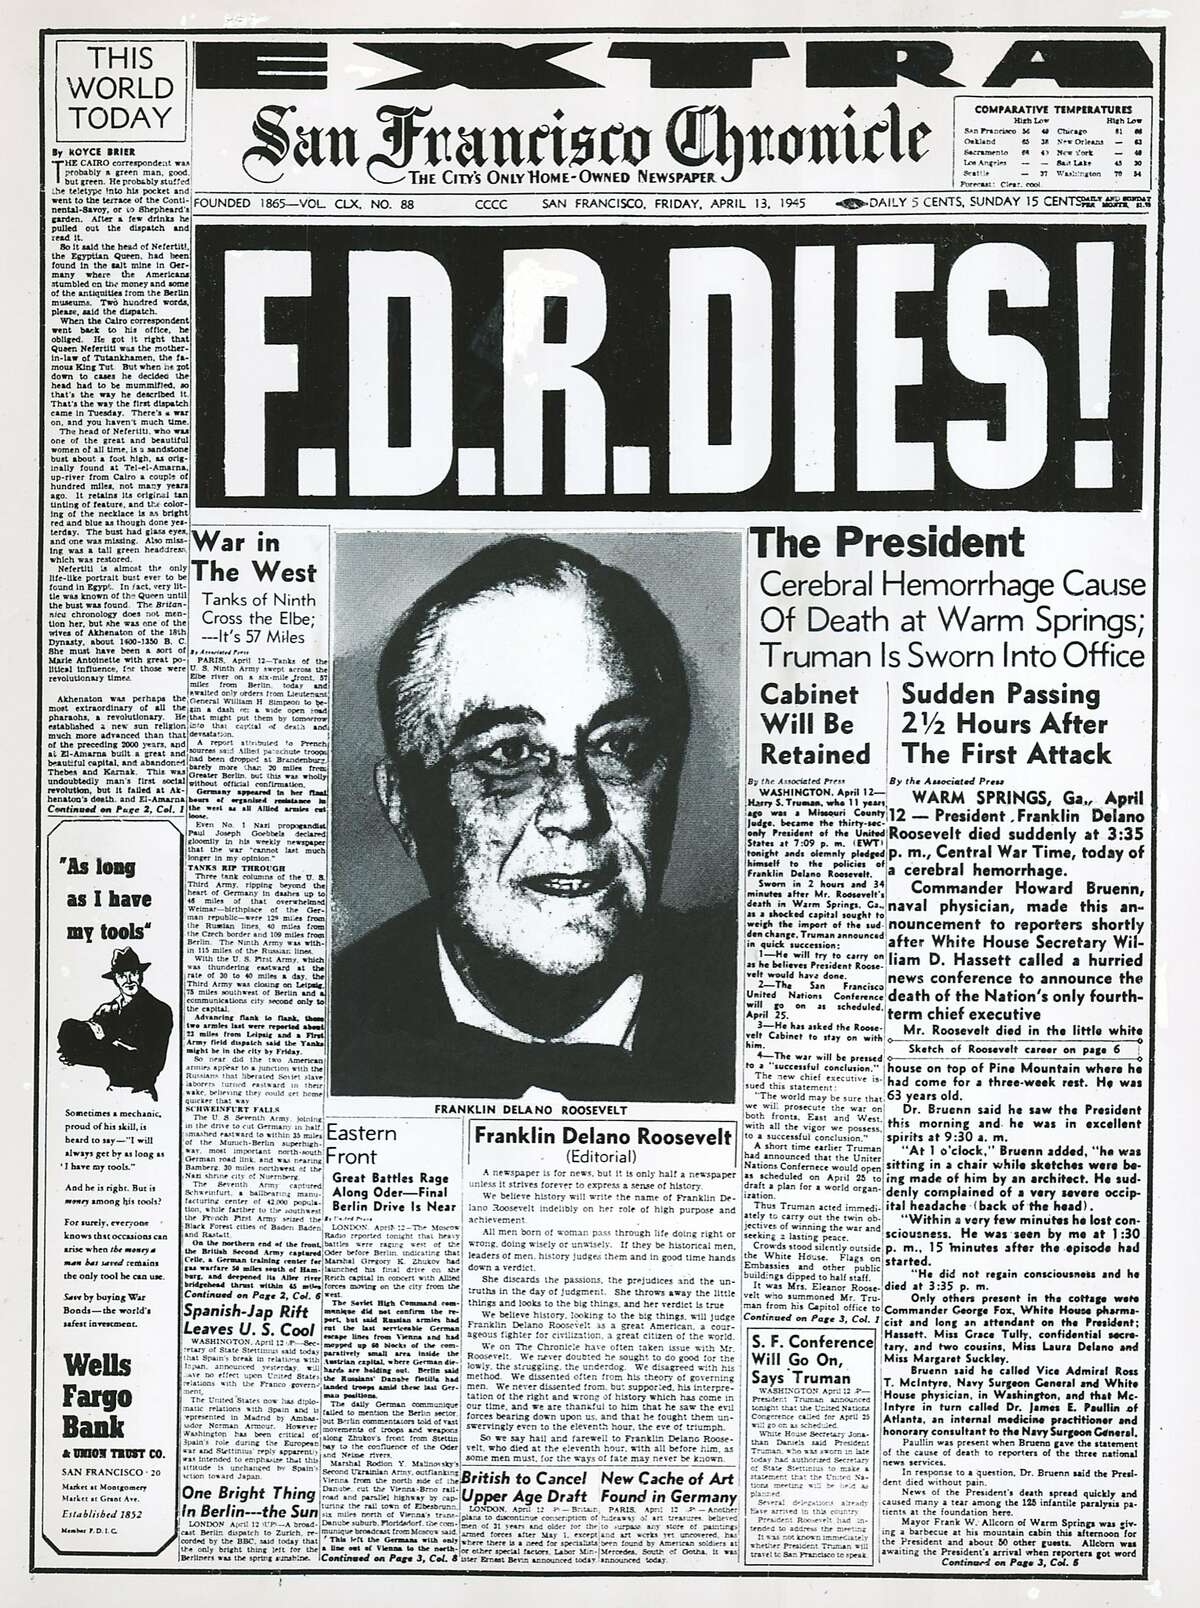 Dailyblast0413.jpg SF Chronicle cover from April 13, 1945. Chronicle File